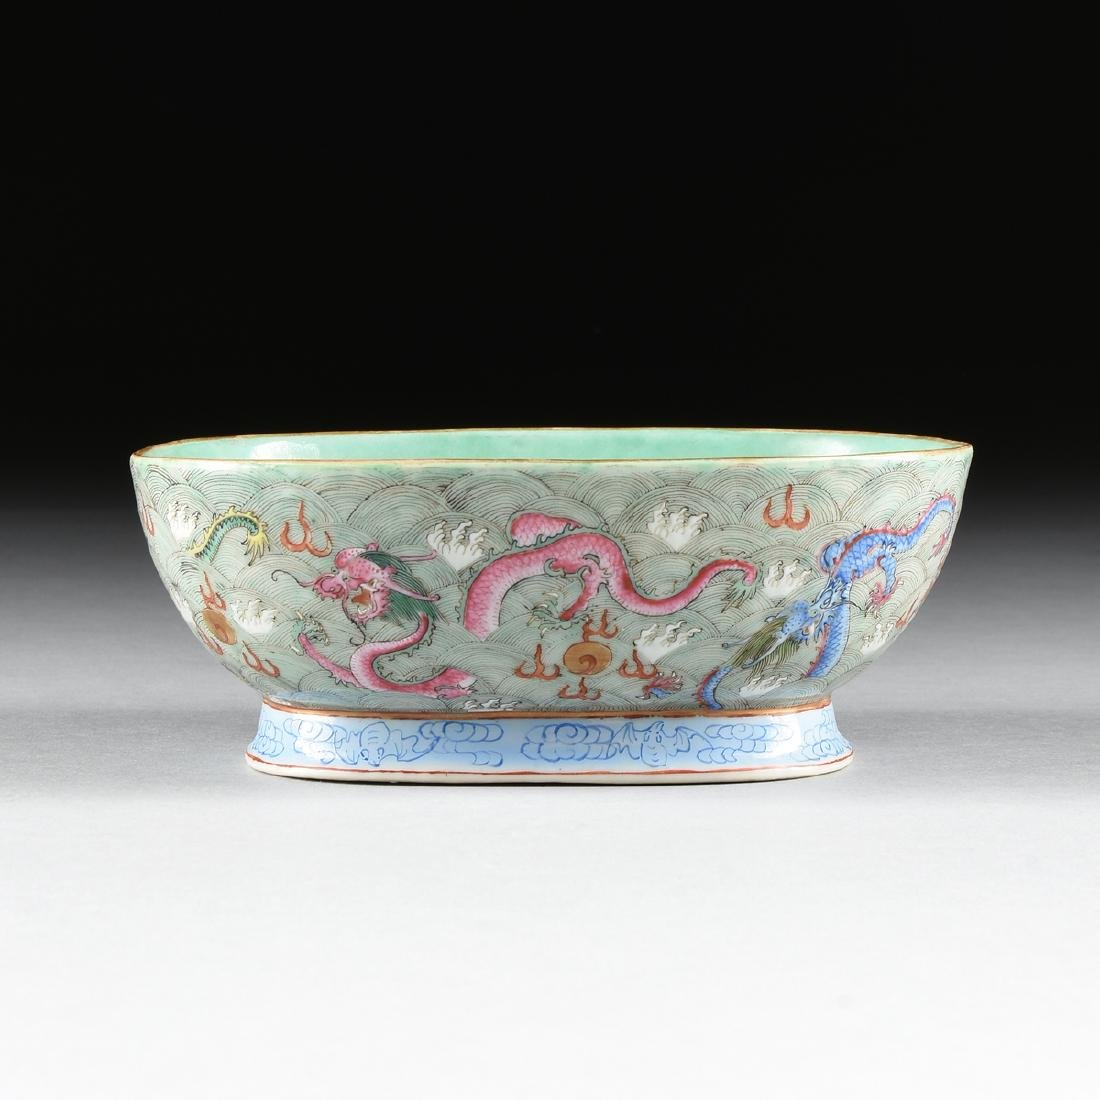 A CHINESE EXPORT PORCELAIN OVAL FOOTED BOWL, REPUBLIC